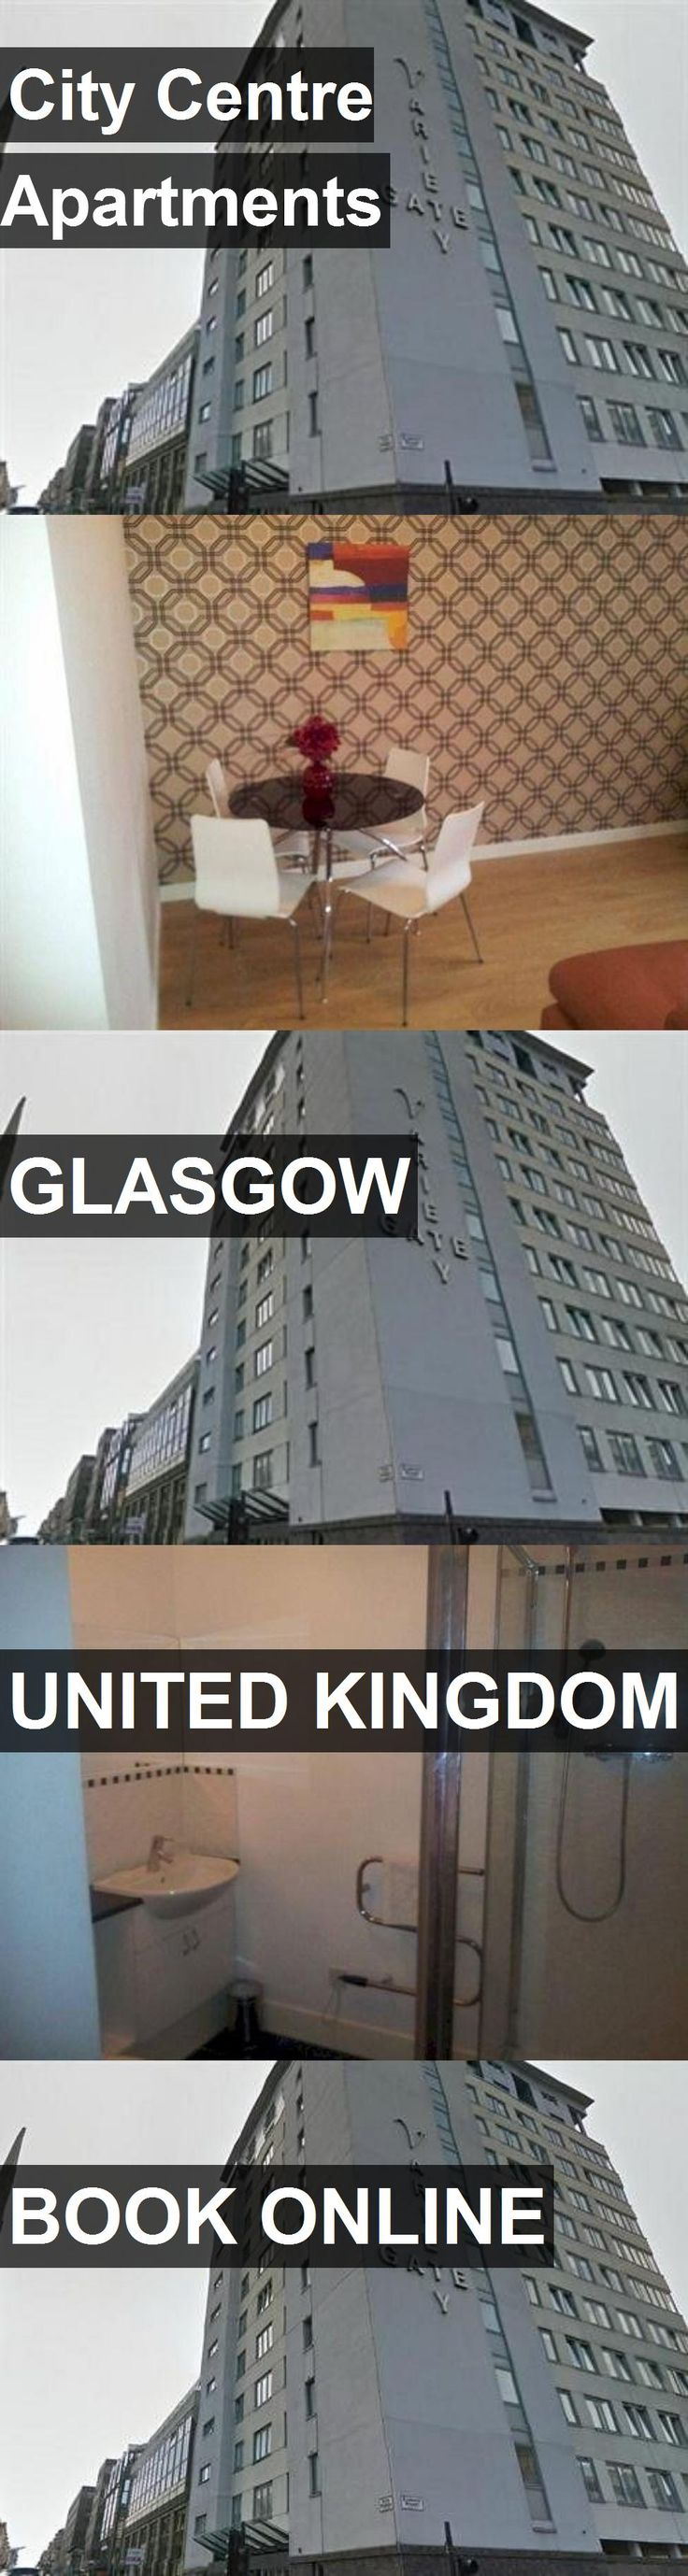 Hotel City Centre Apartments in Glasgow, United Kingdom. For more information, photos, reviews and best prices please follow the link. #UnitedKingdom #Glasgow #CityCentreApartments #hotel #travel #vacation